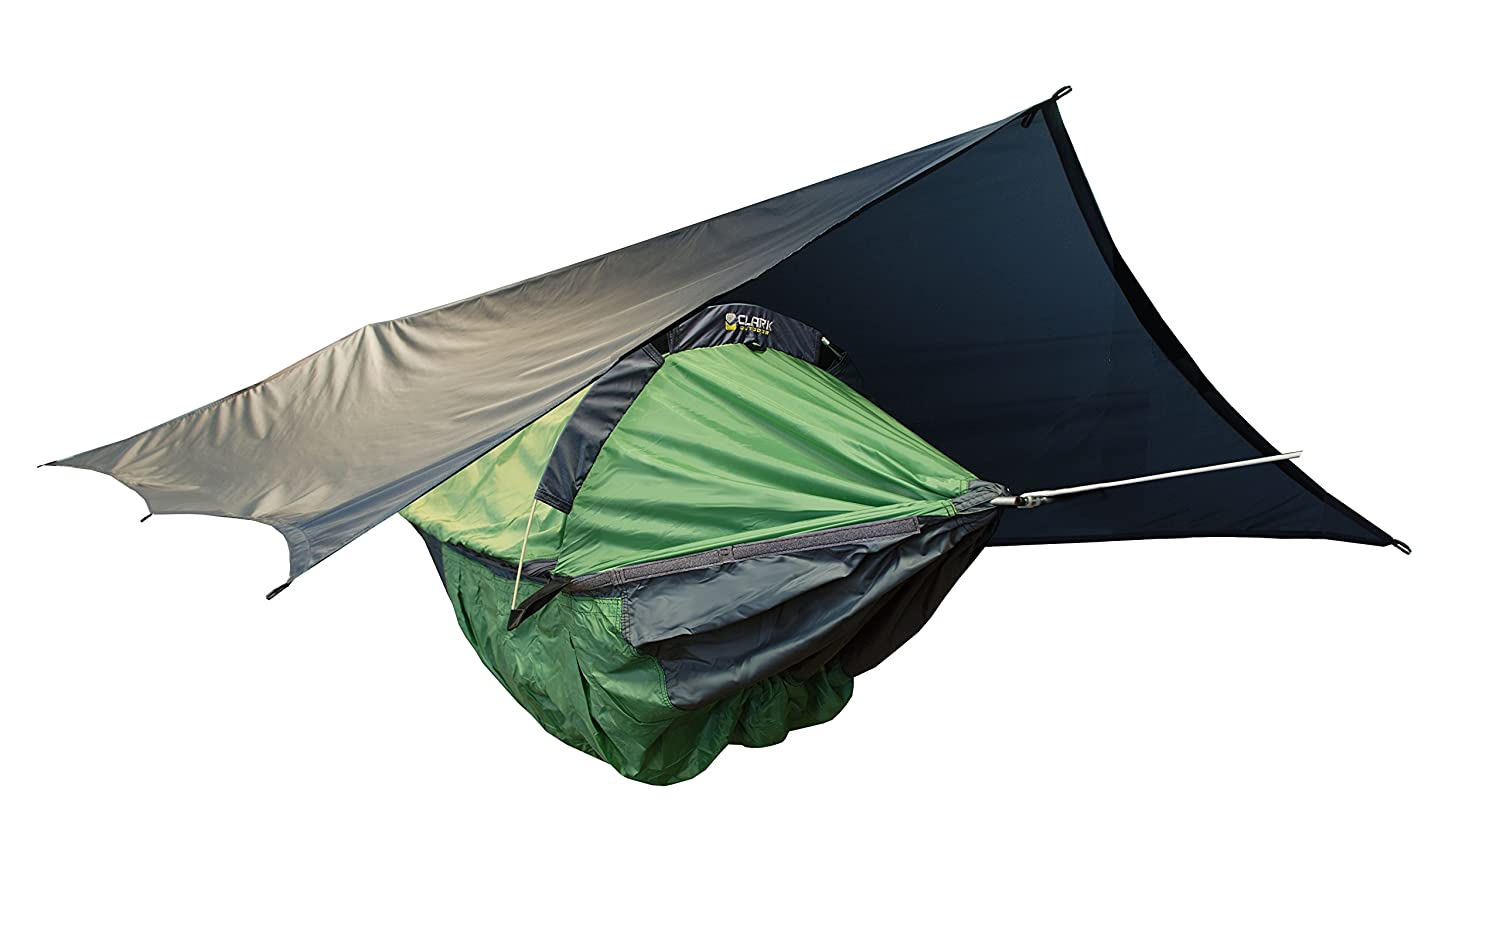 Amazon.com Clark NX-270 Four-Season C&ing Hammock (Mountain Green) Sports u0026 Outdoors  sc 1 st  Amazon.com & Amazon.com: Clark NX-270 Four-Season Camping Hammock (Mountain Green ...